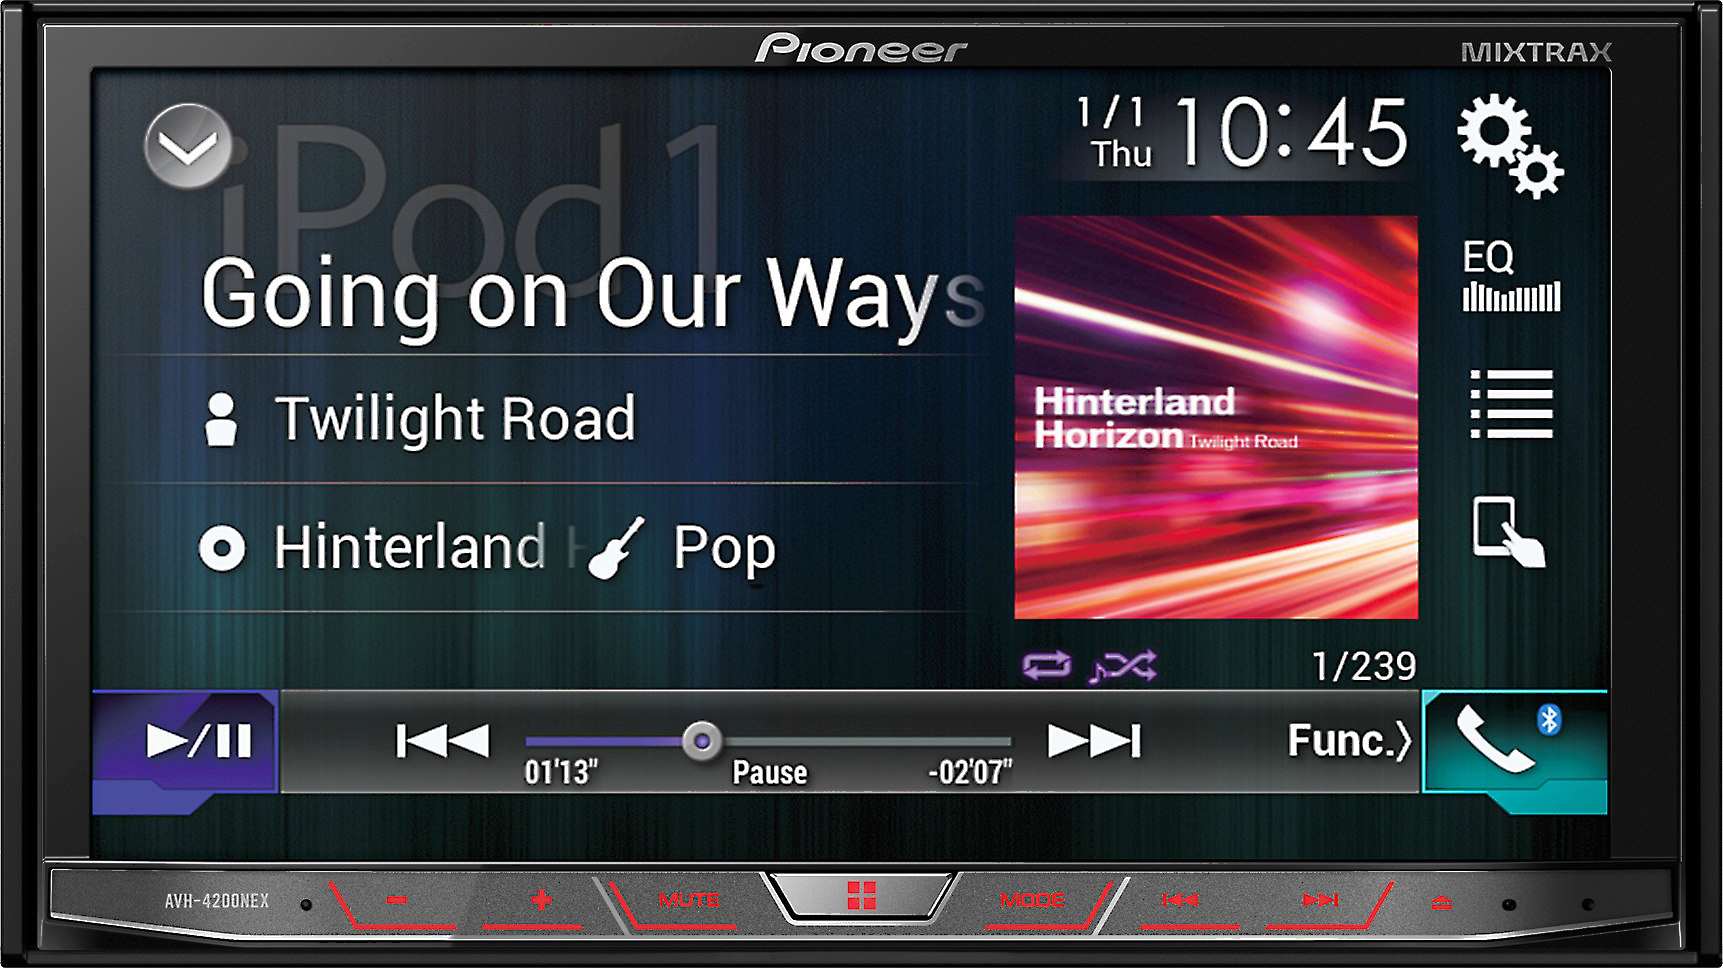 Pioneer AVH-4200NEX DVD receiver at Crutchfield.com on